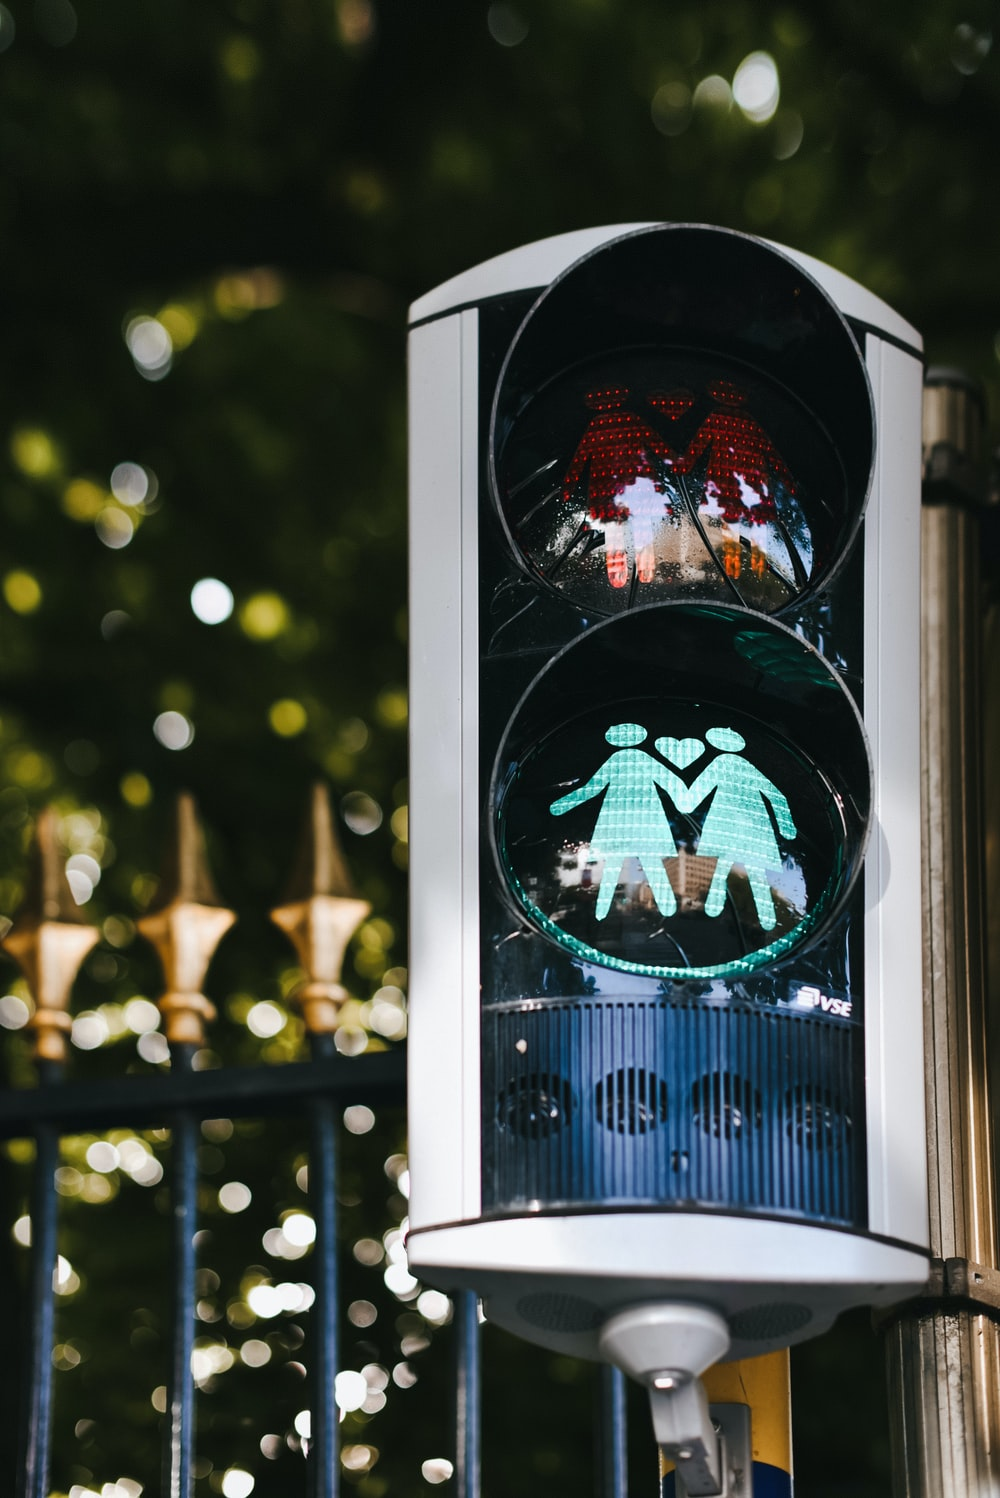 gray traffic light showing green light